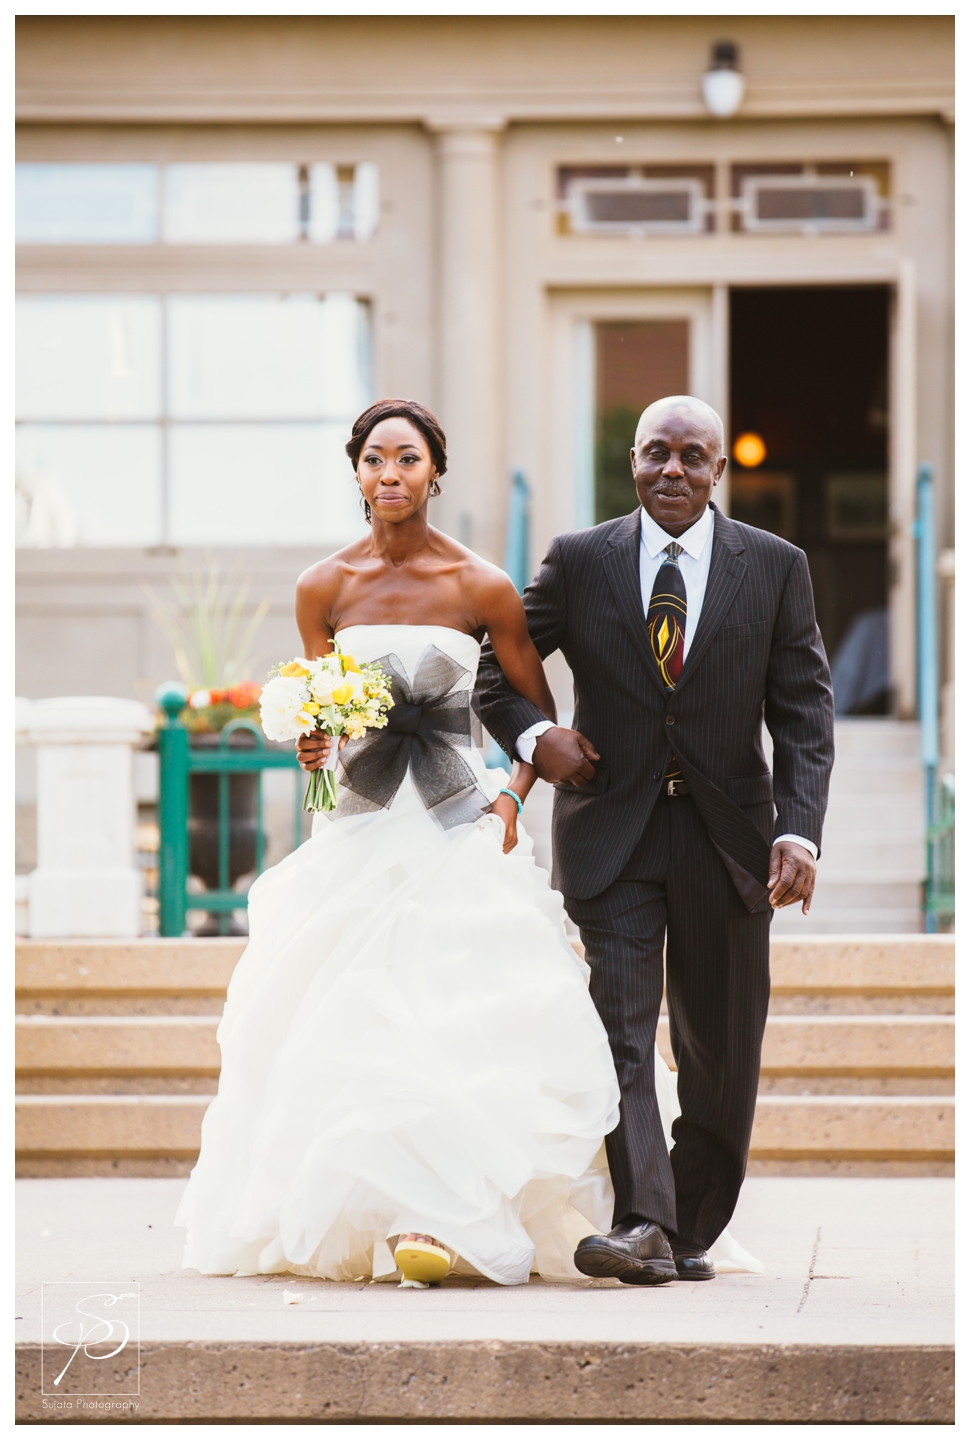 Bride and her father coming down the aisle at her garden wedding at Lougheed House